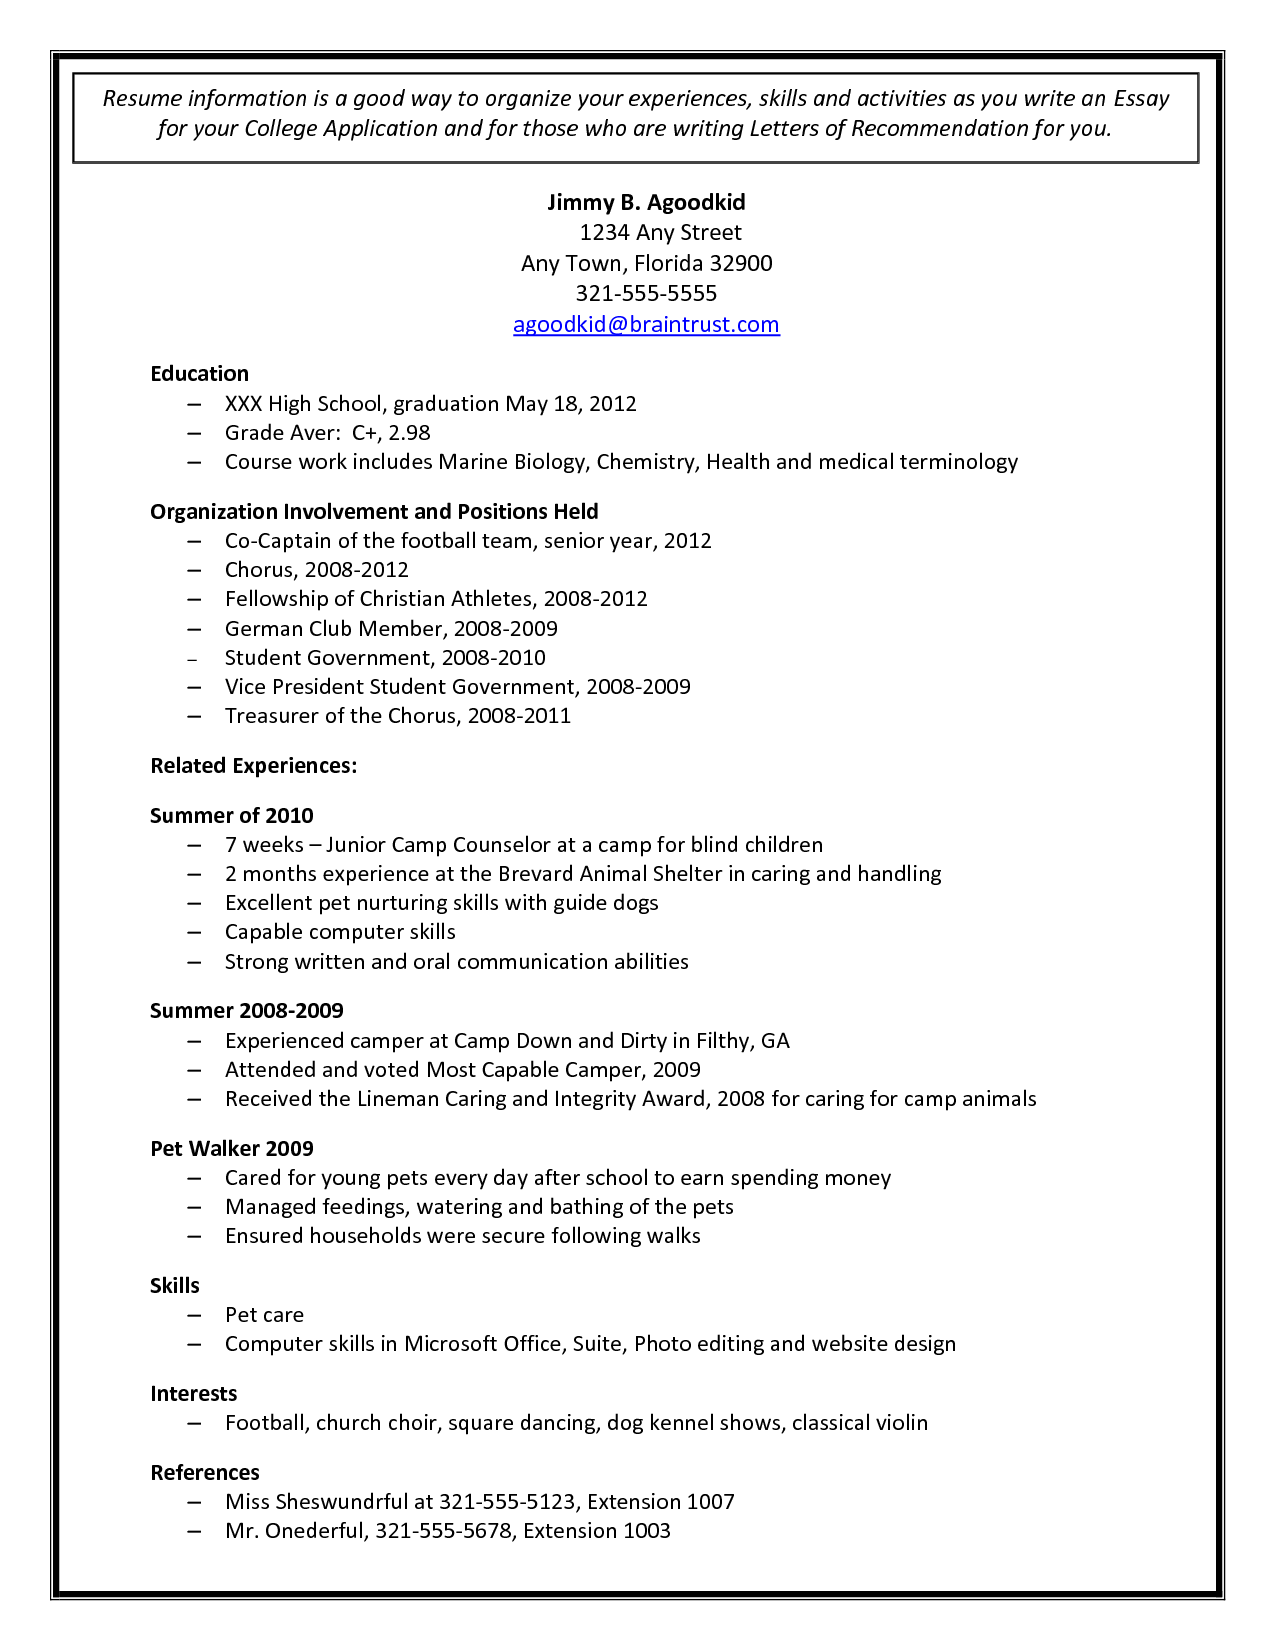 Academic Resume For College Applications